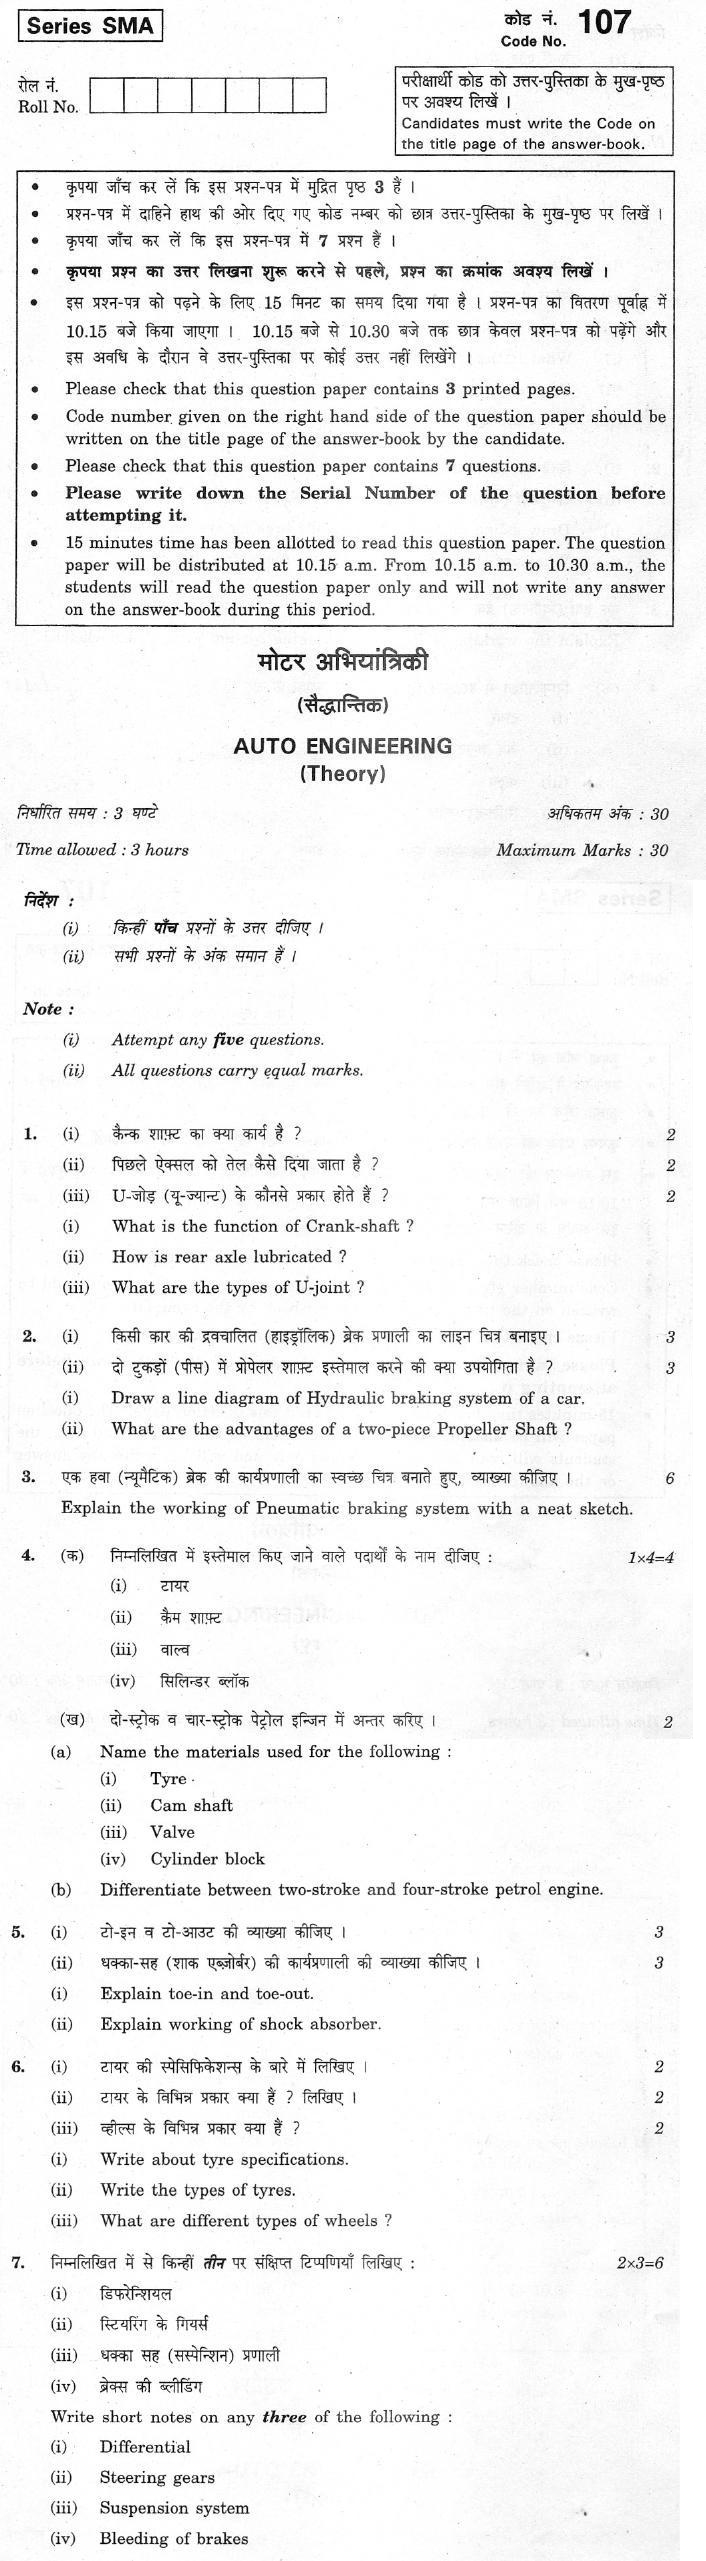 CBSE Class XII Previous Year Question Paper 2012 Auto Engineering